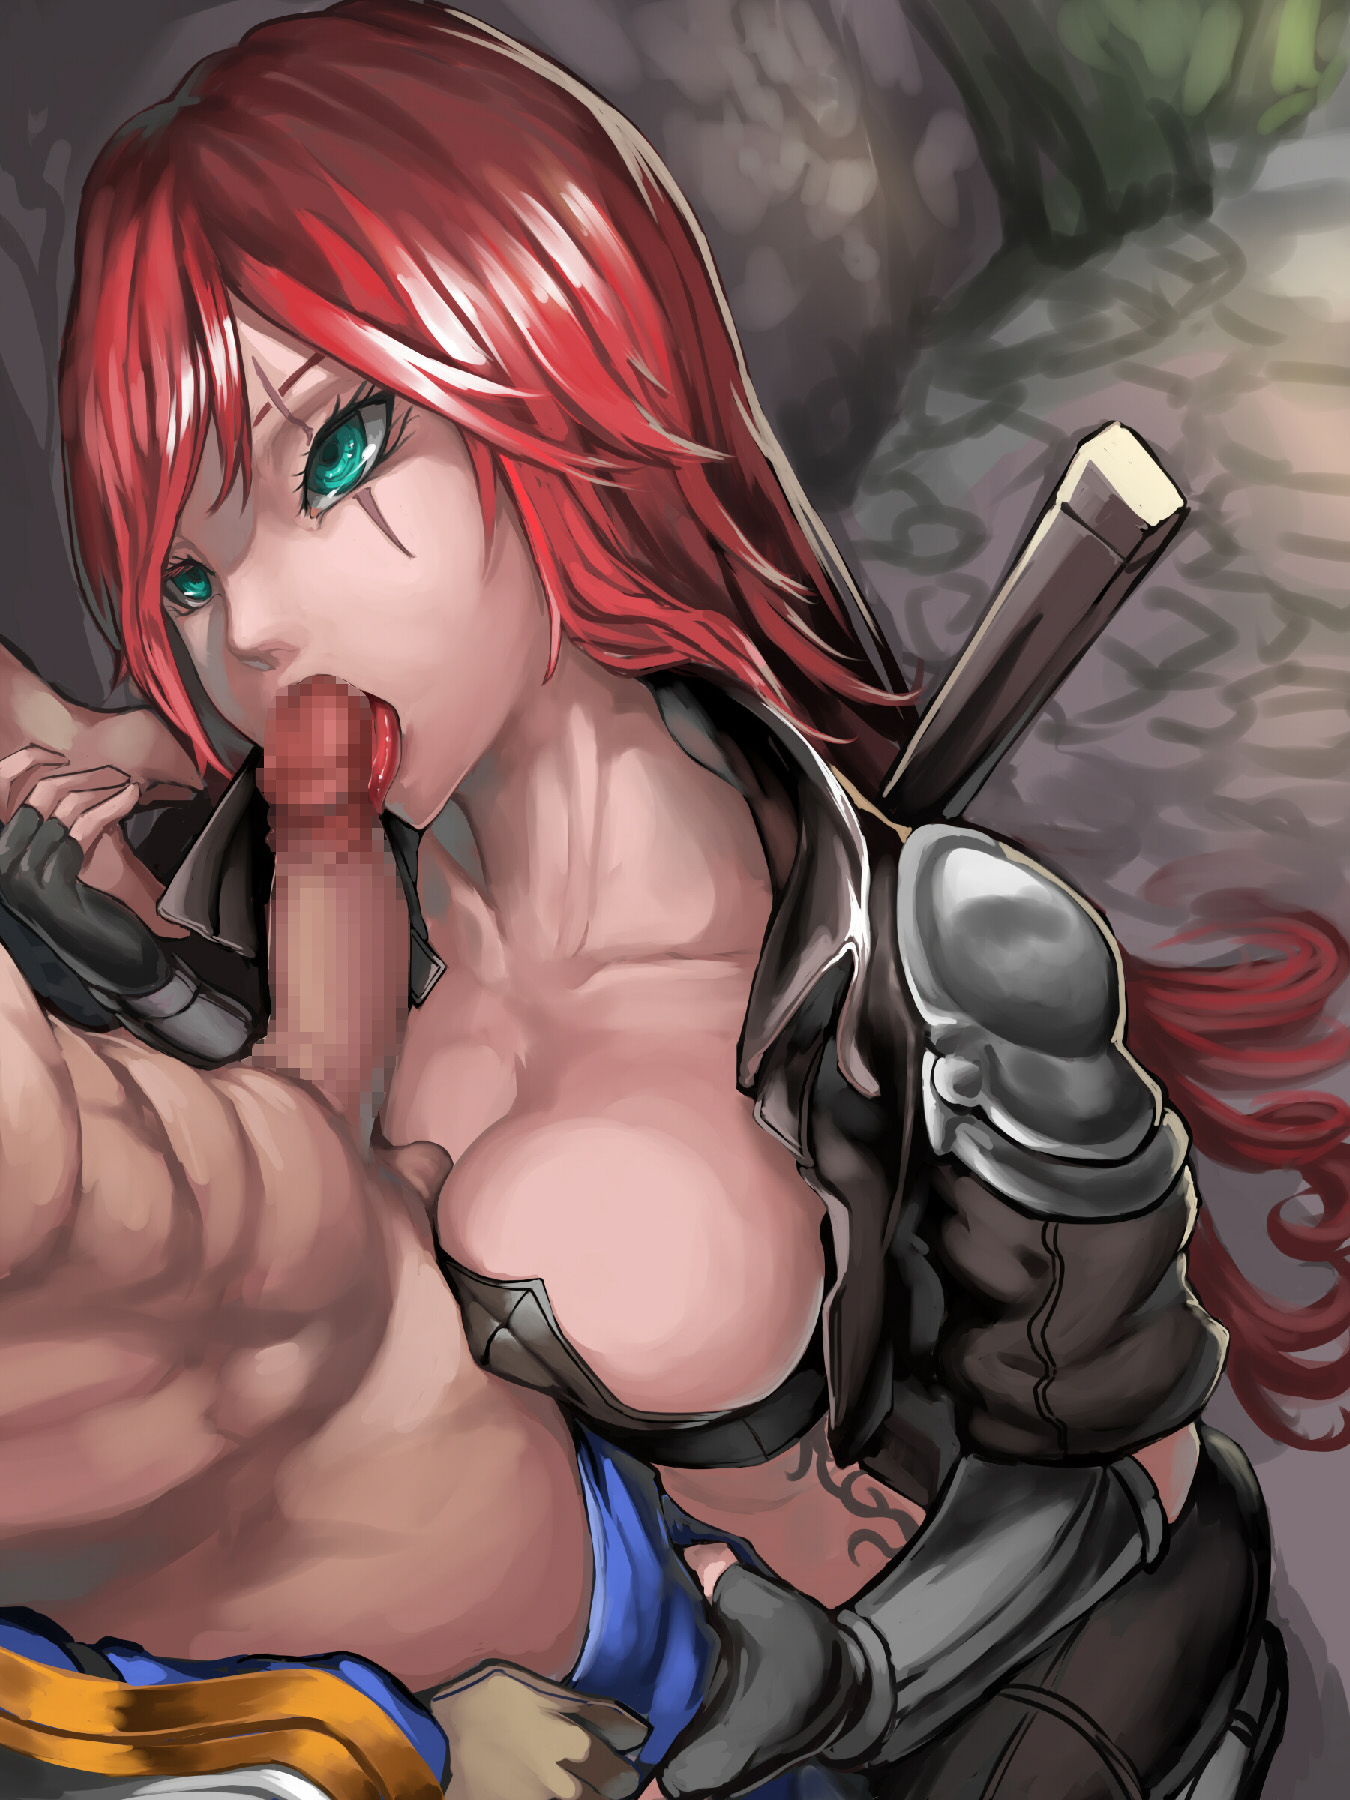 League of legends porn video free hentai photo